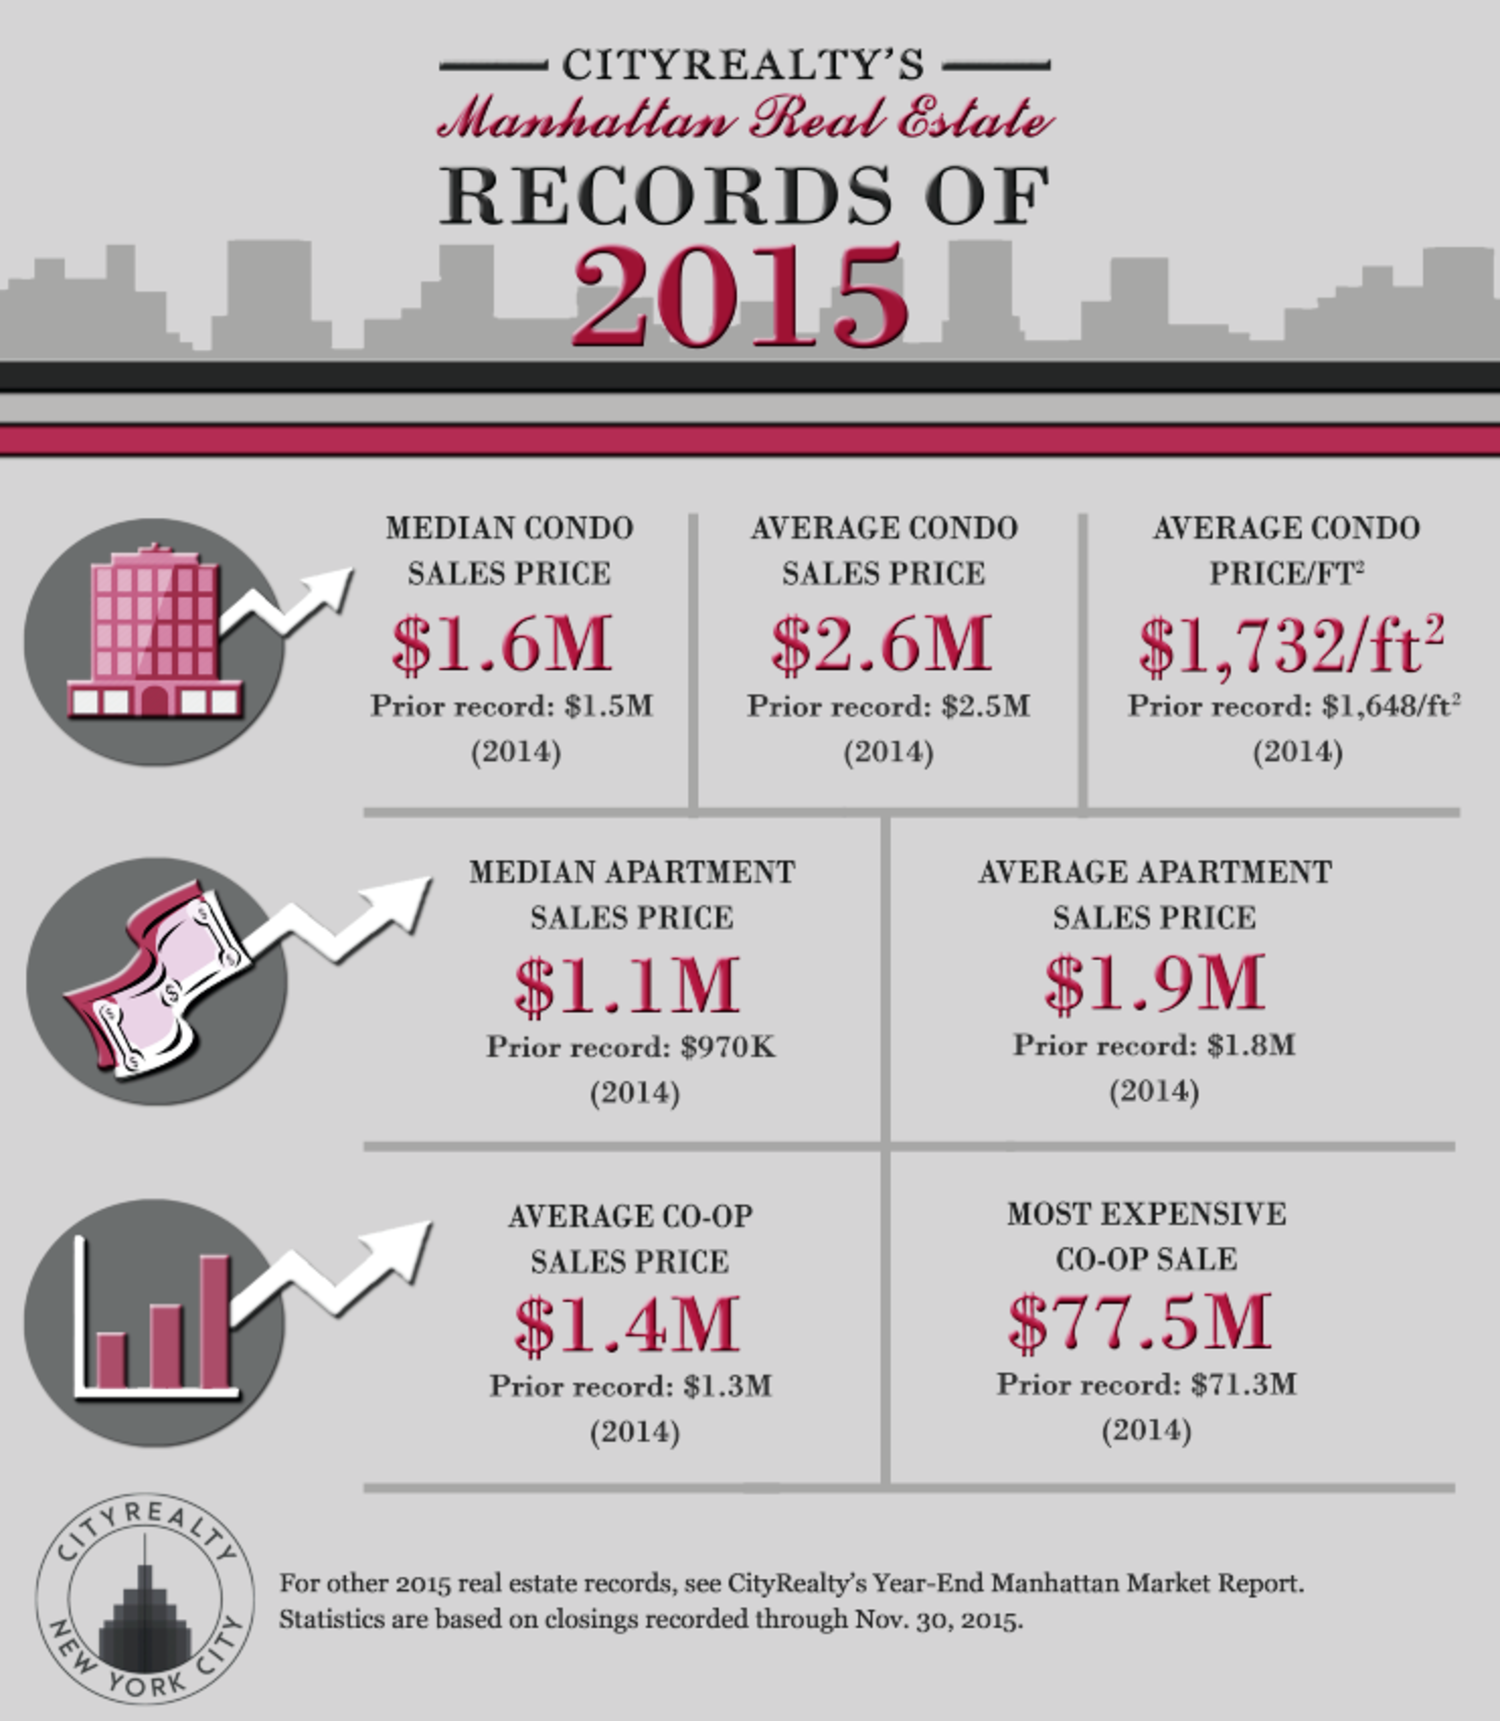 Manhattan Real Estate Records of 2015